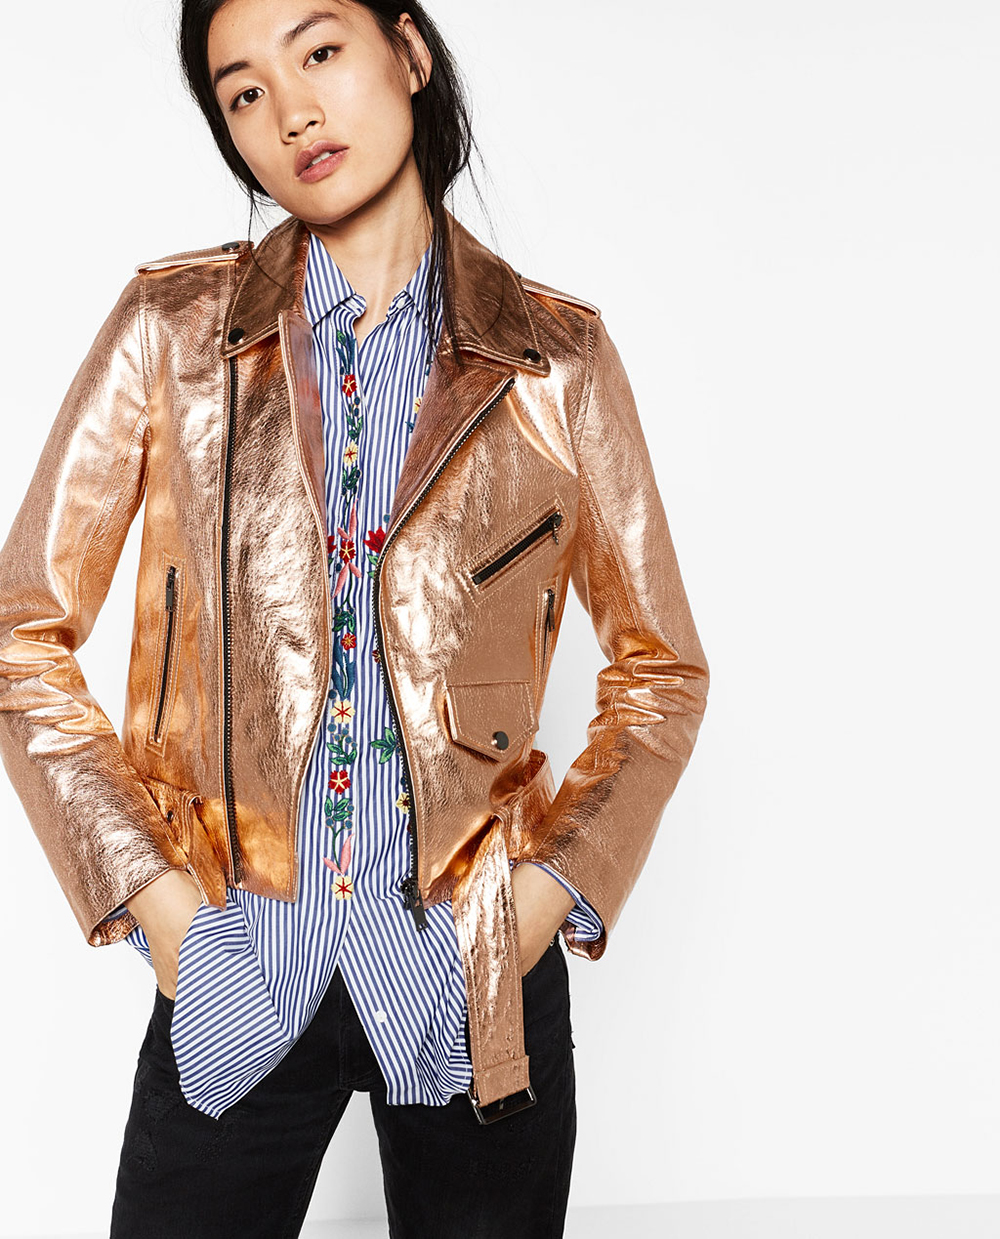 Zara Metallic Leather Jacket | Valentine's Day Gift Guide